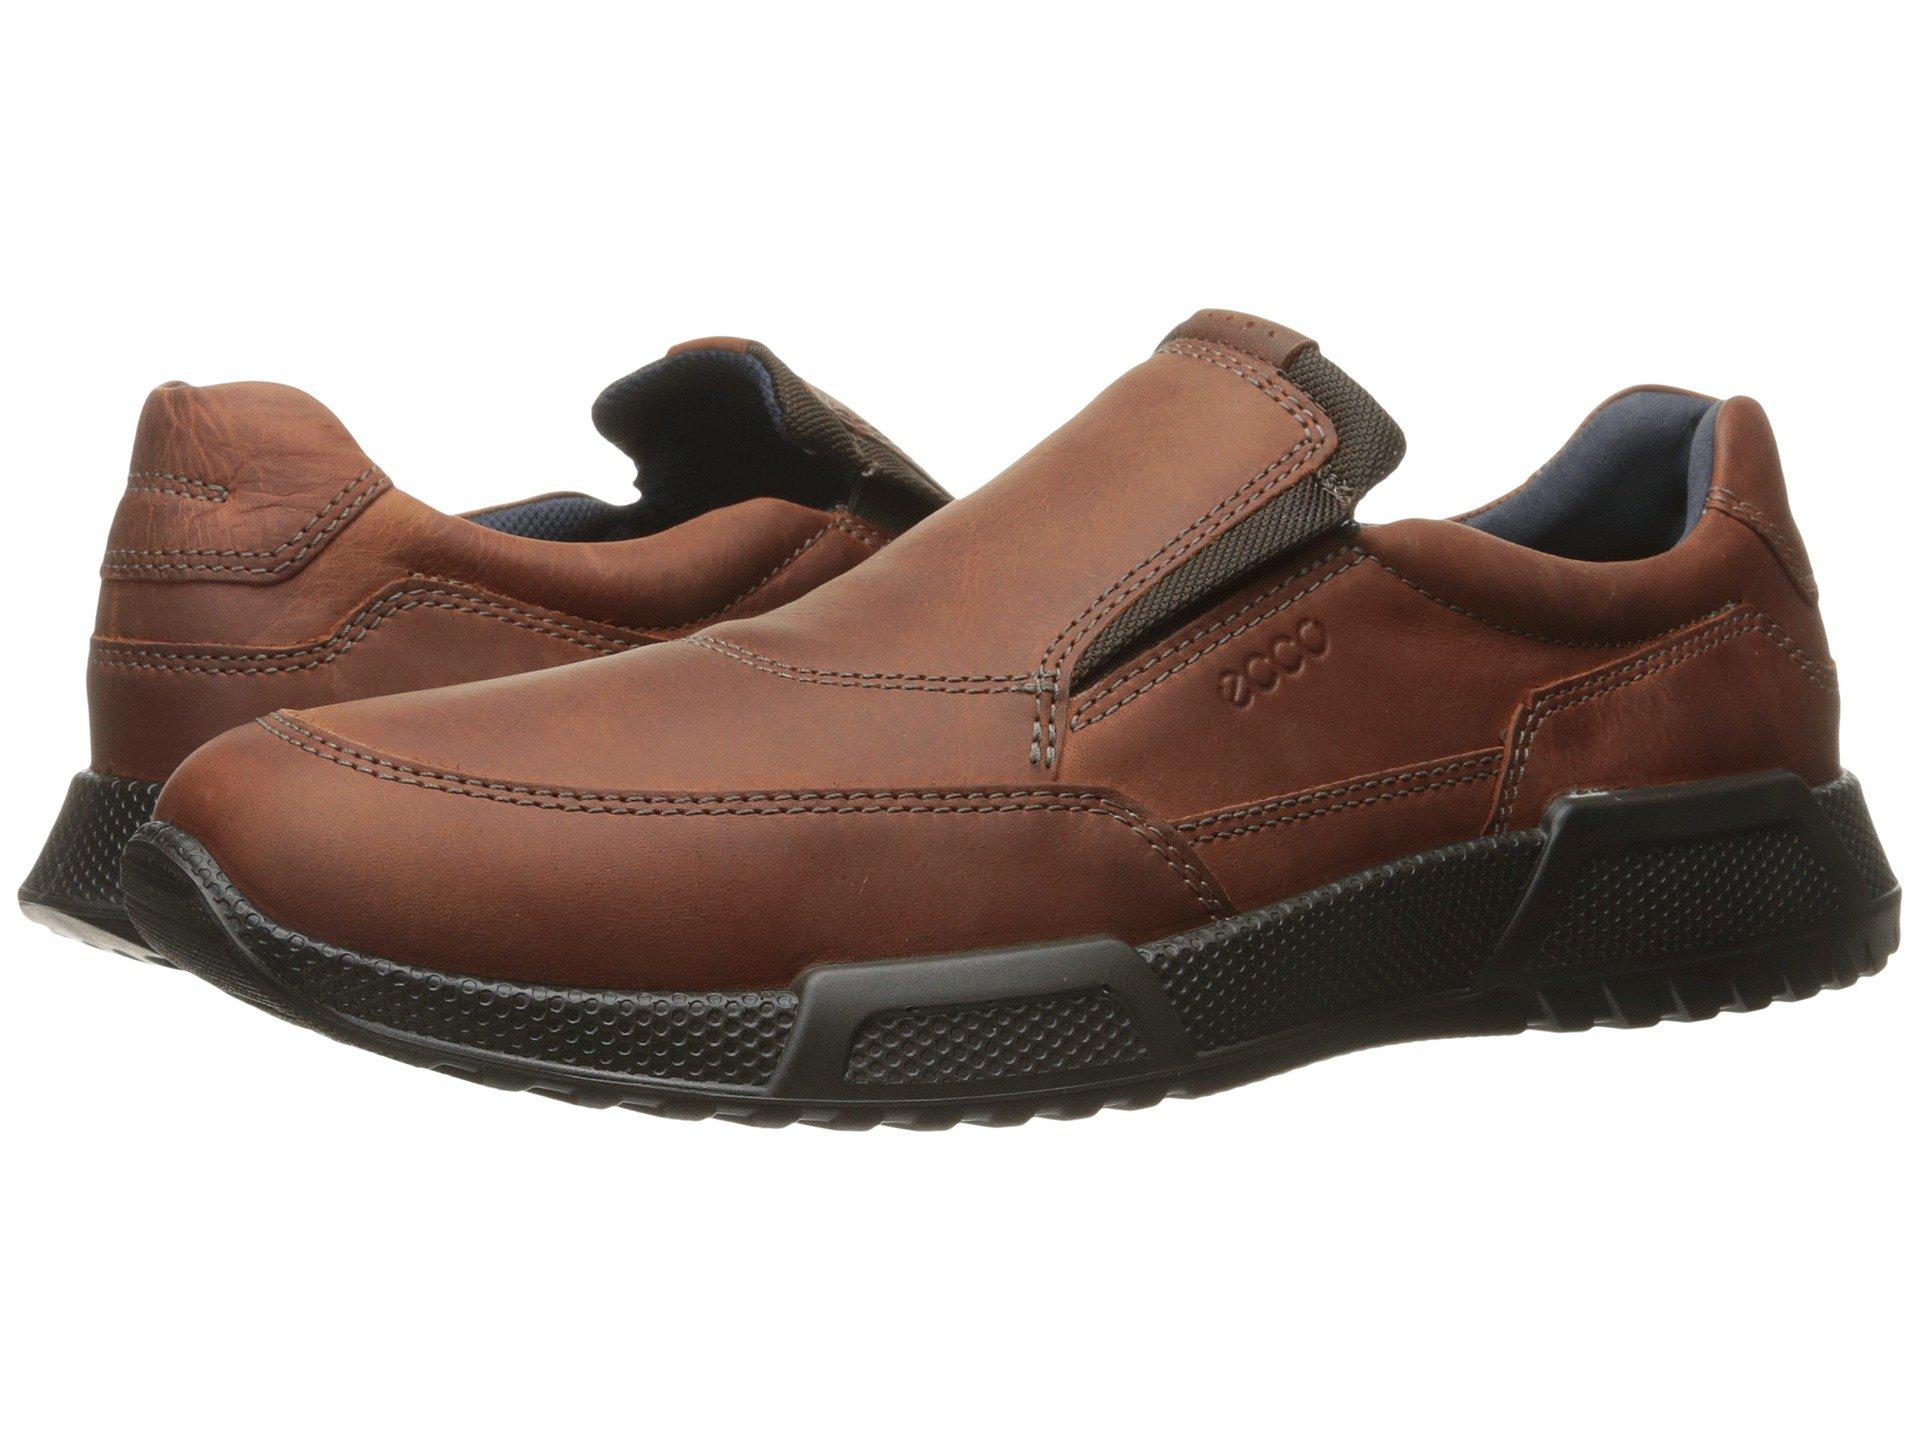 Ecco Leather Luca Slip On Trainers in